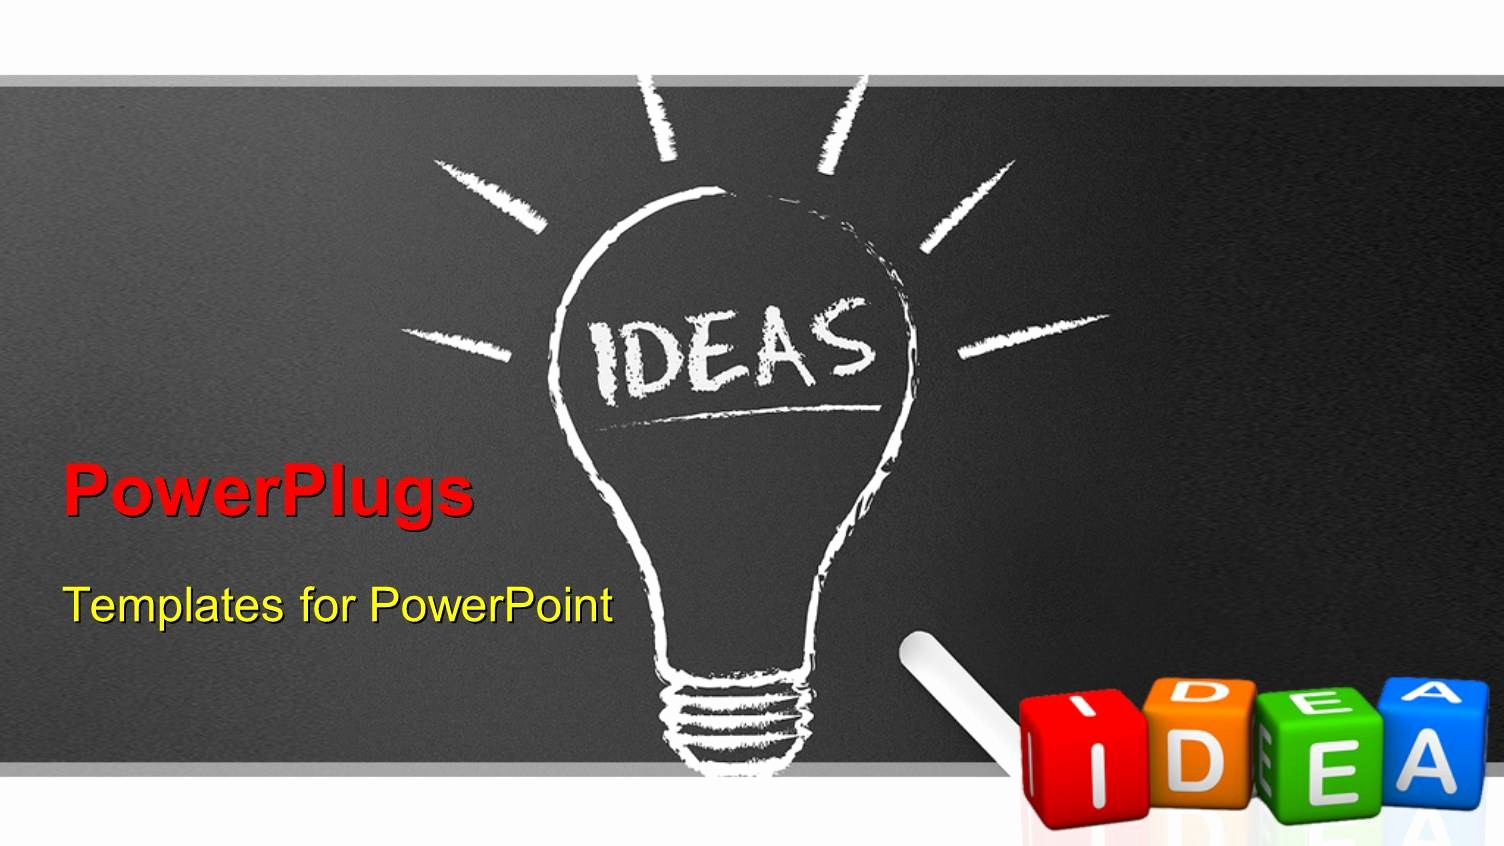 Chalkboard Powerpoint Template Free Download Best Of Powerpoint Template Chalkboard Blackboard with Chalk and